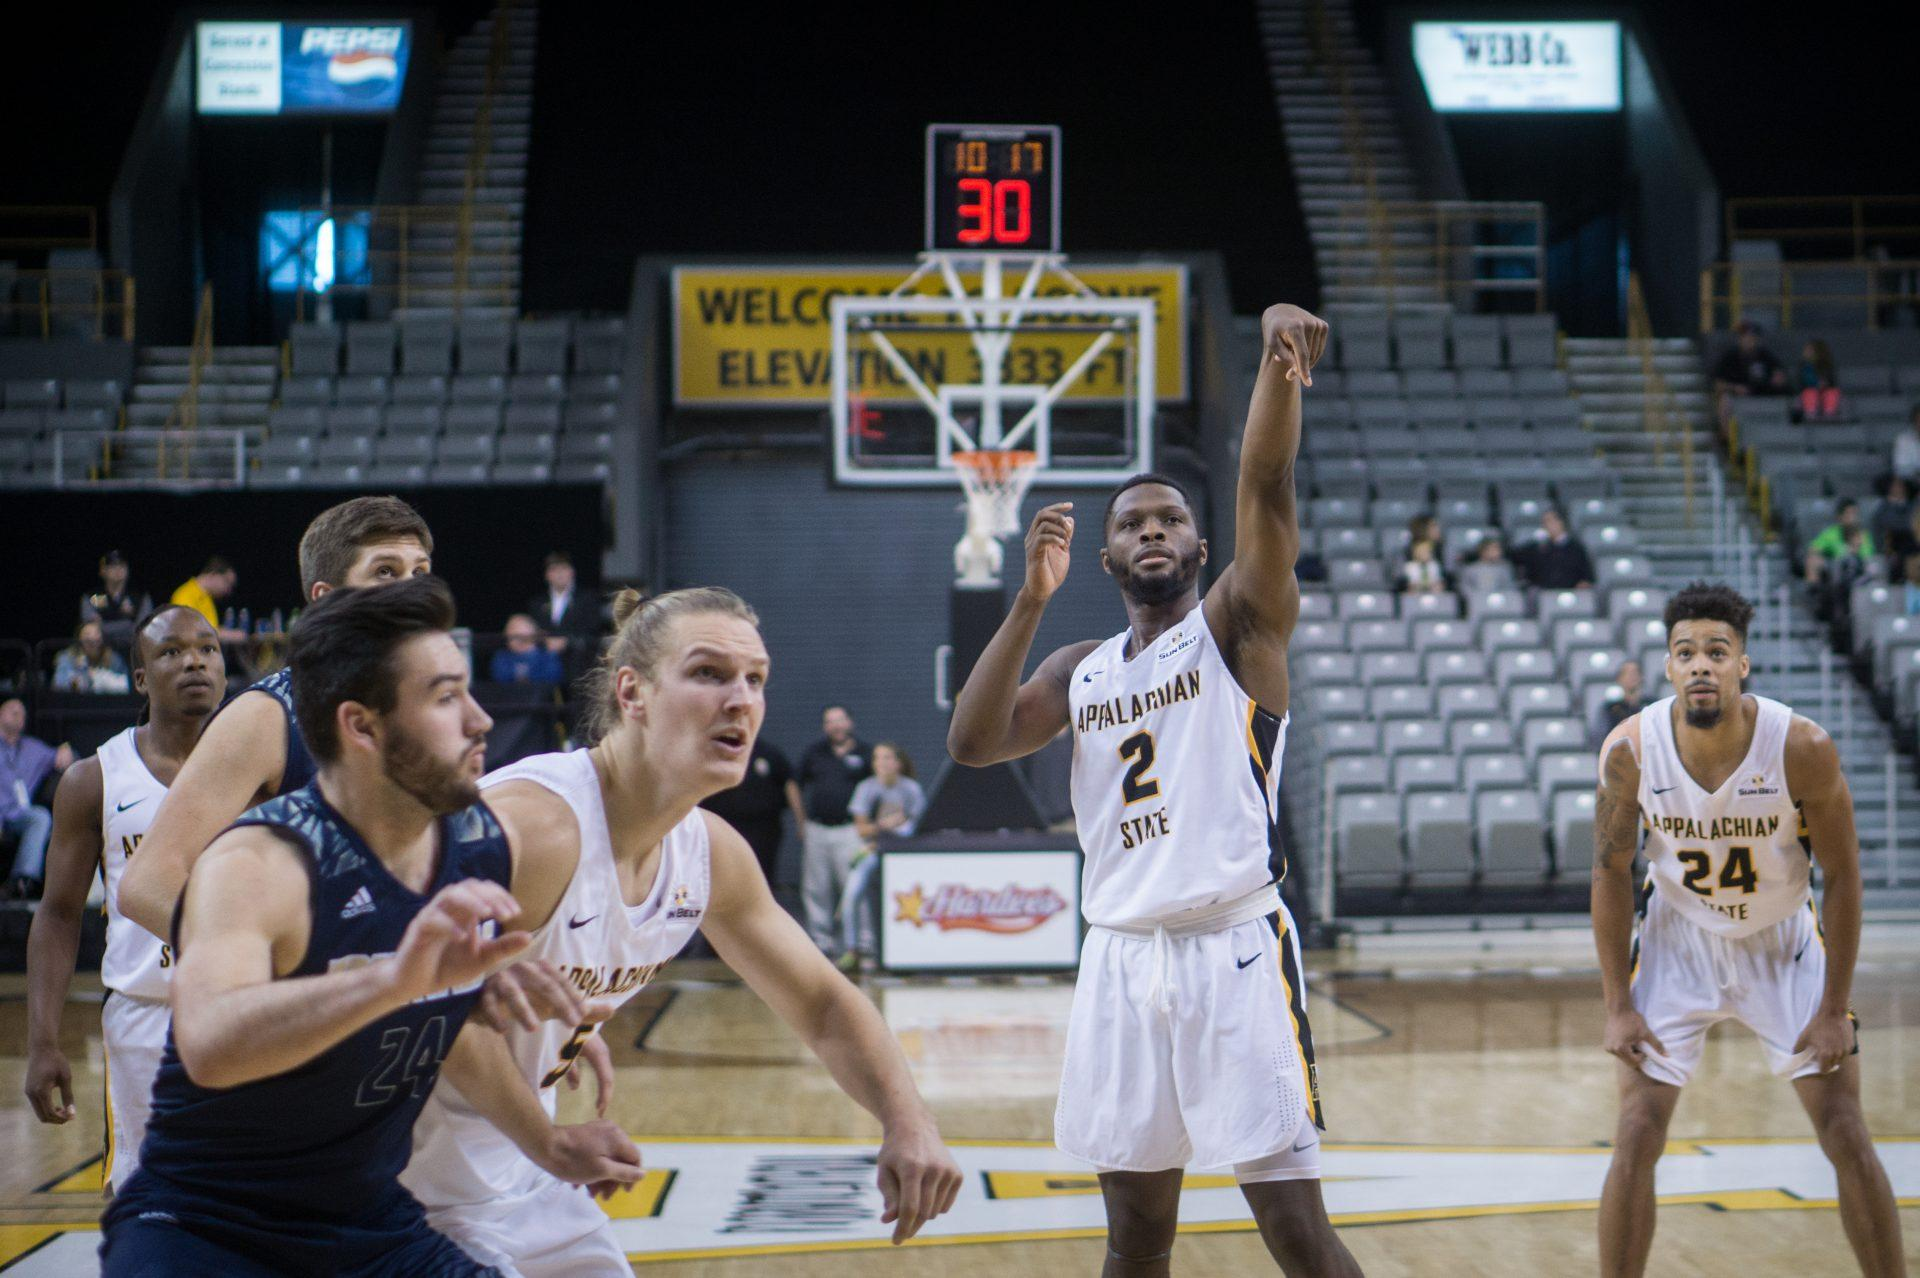 Record breaking weekend for App State men's basketball